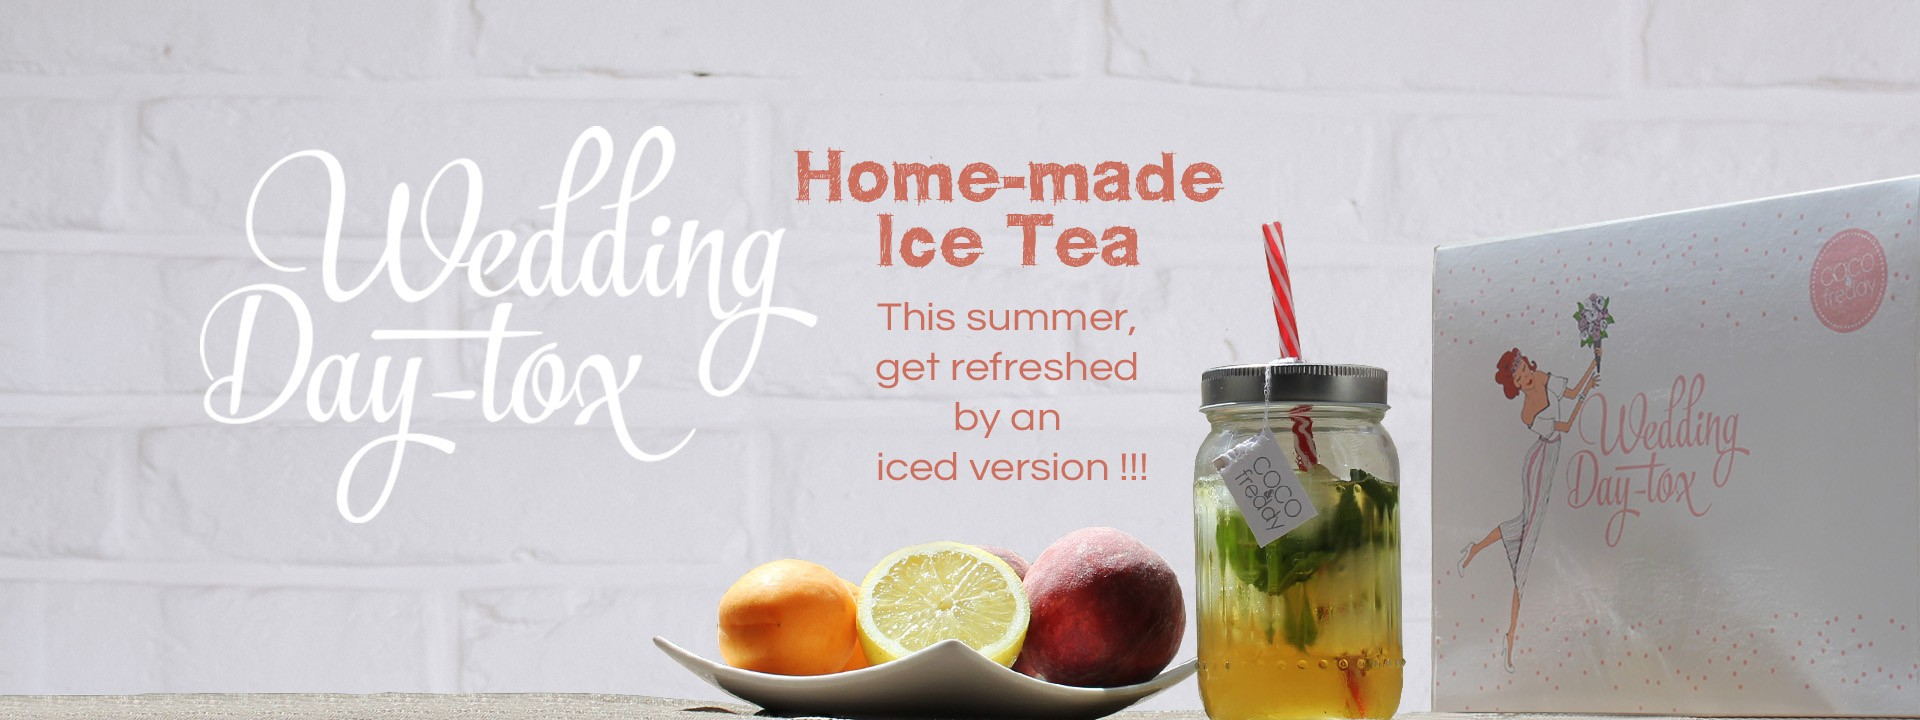 This Summer, enjoy  Wedding Day-tox Home Made Ice Tea !